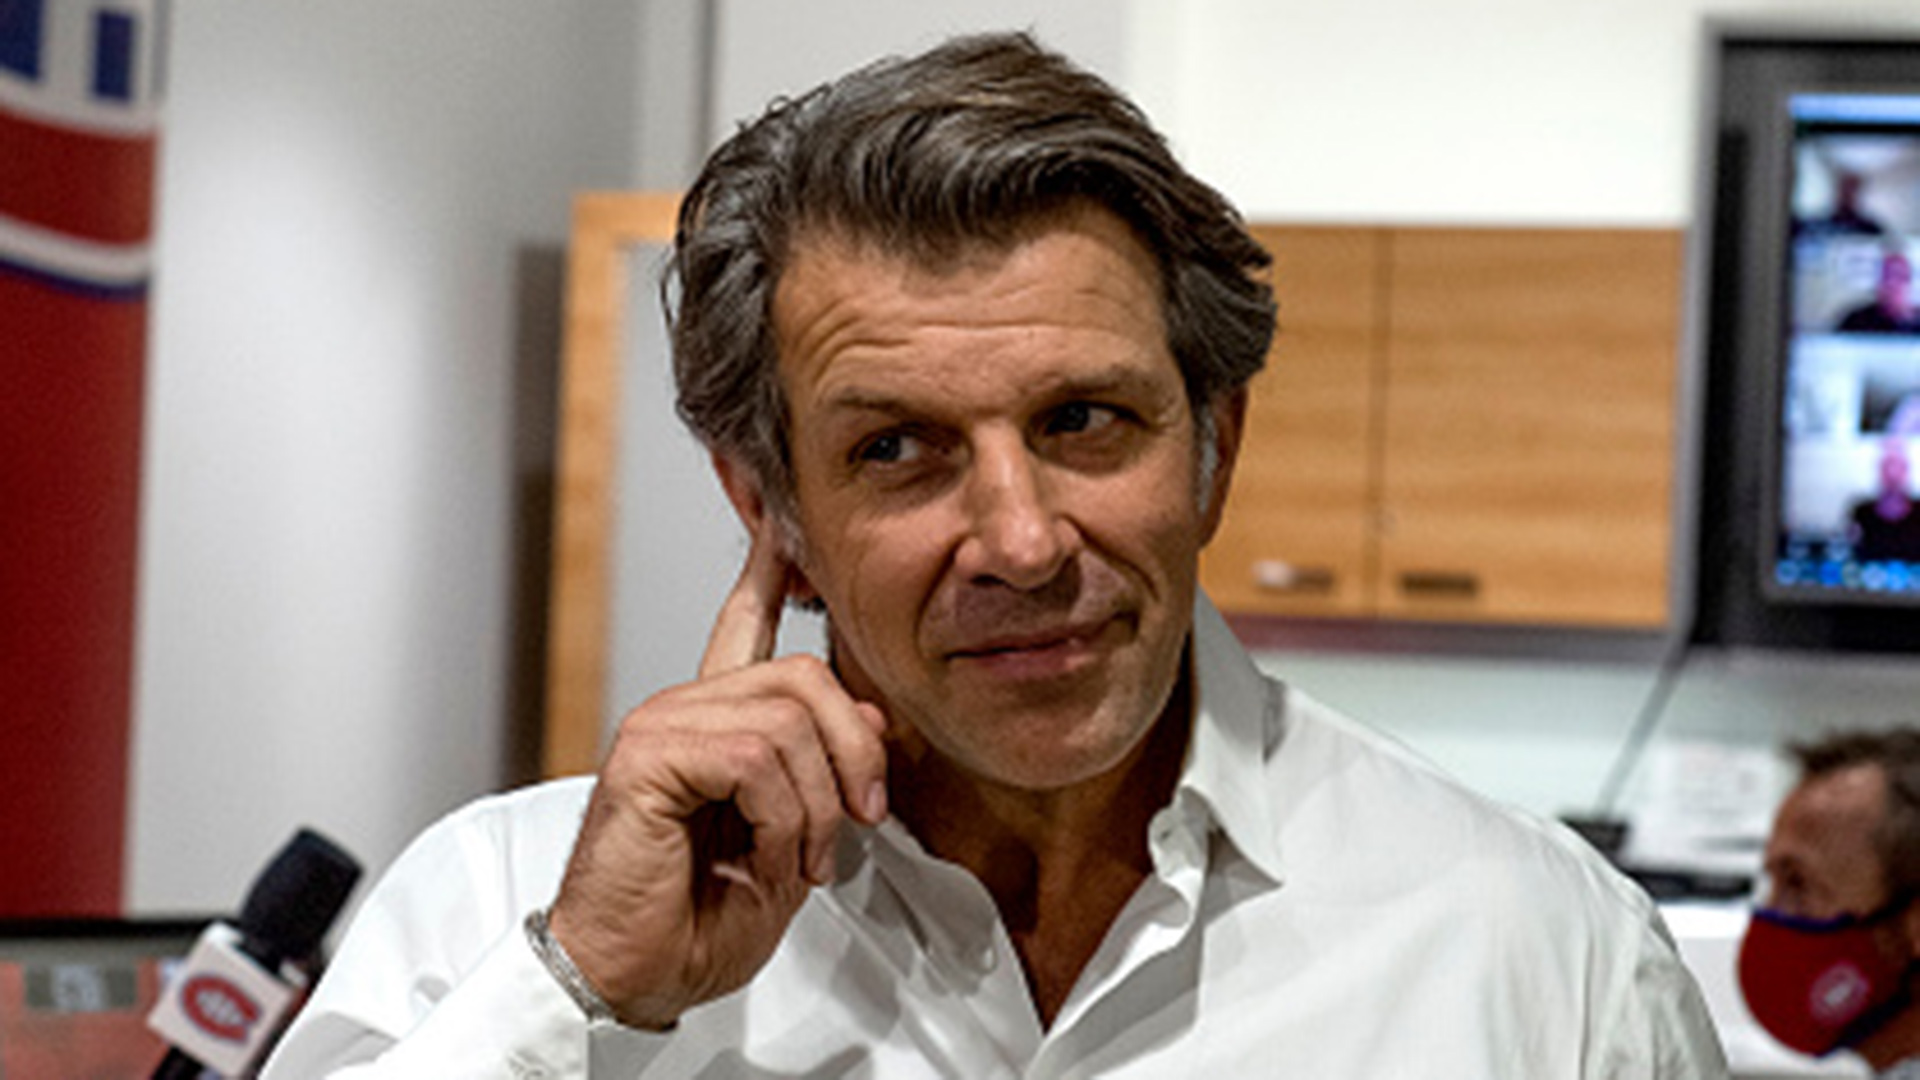 Is Bergevin done making moves?